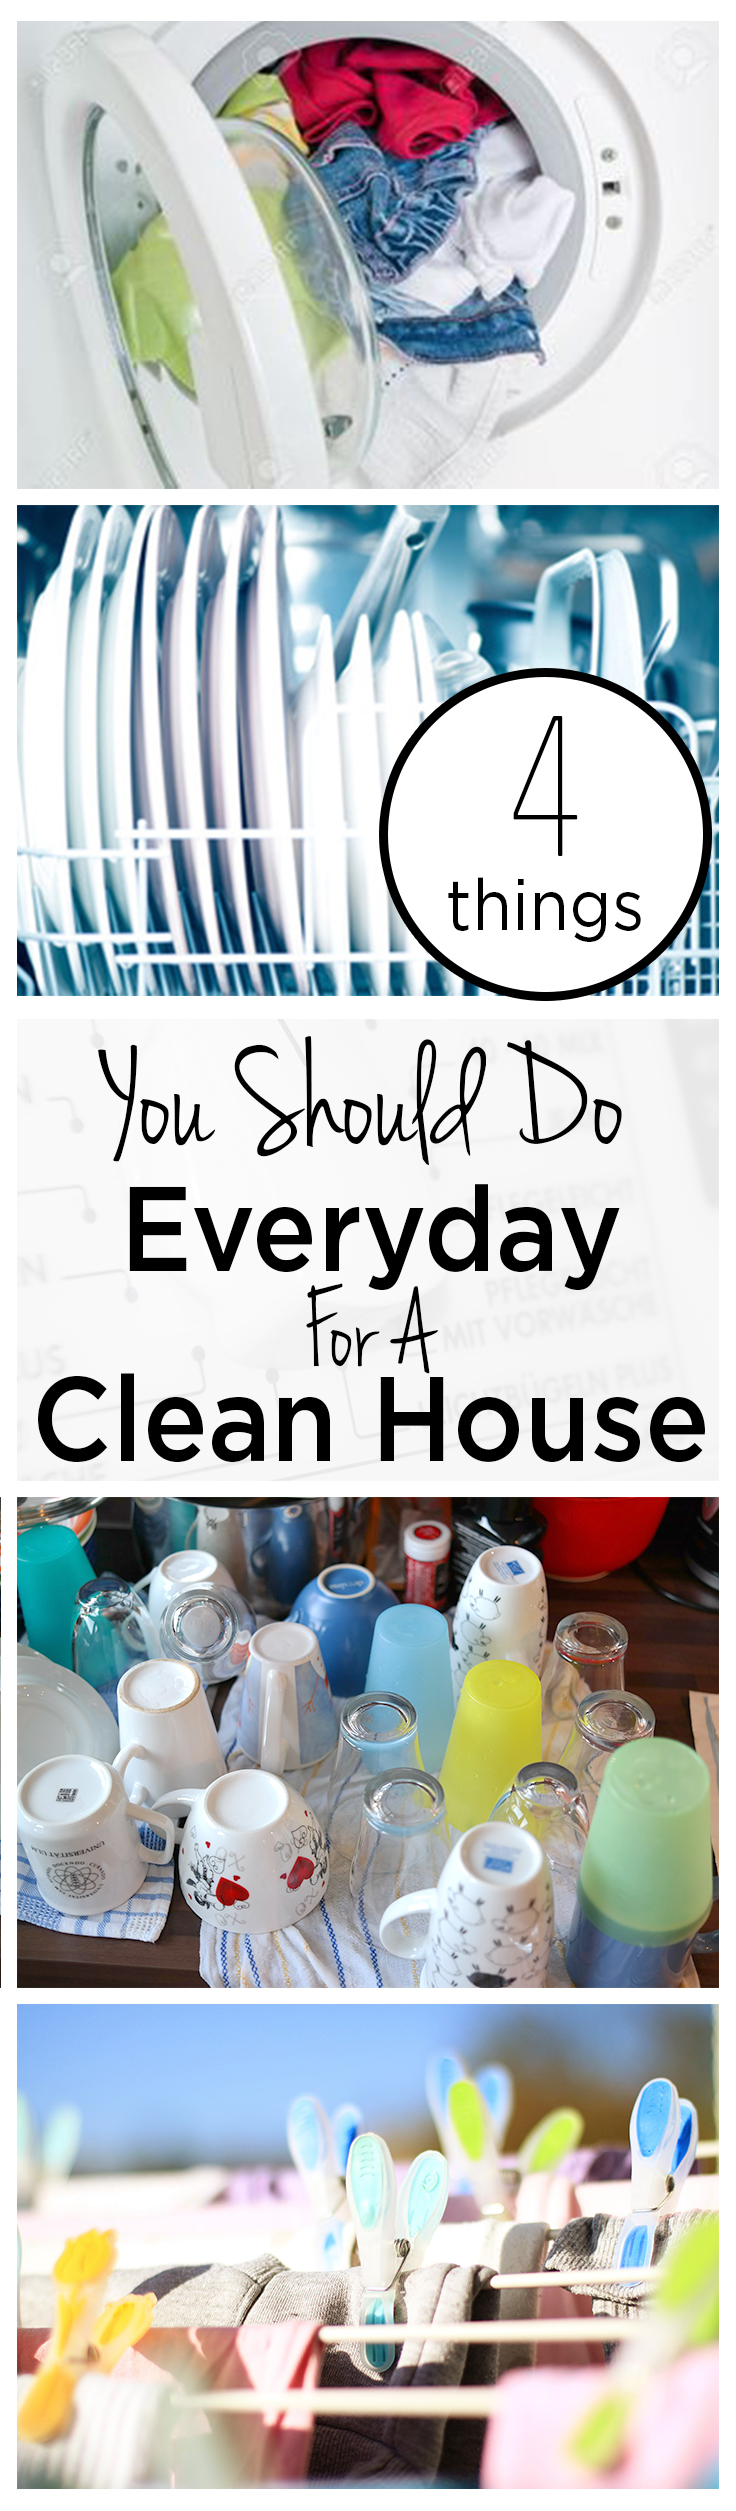 4 Things You Should Do Everyday For A Clean House